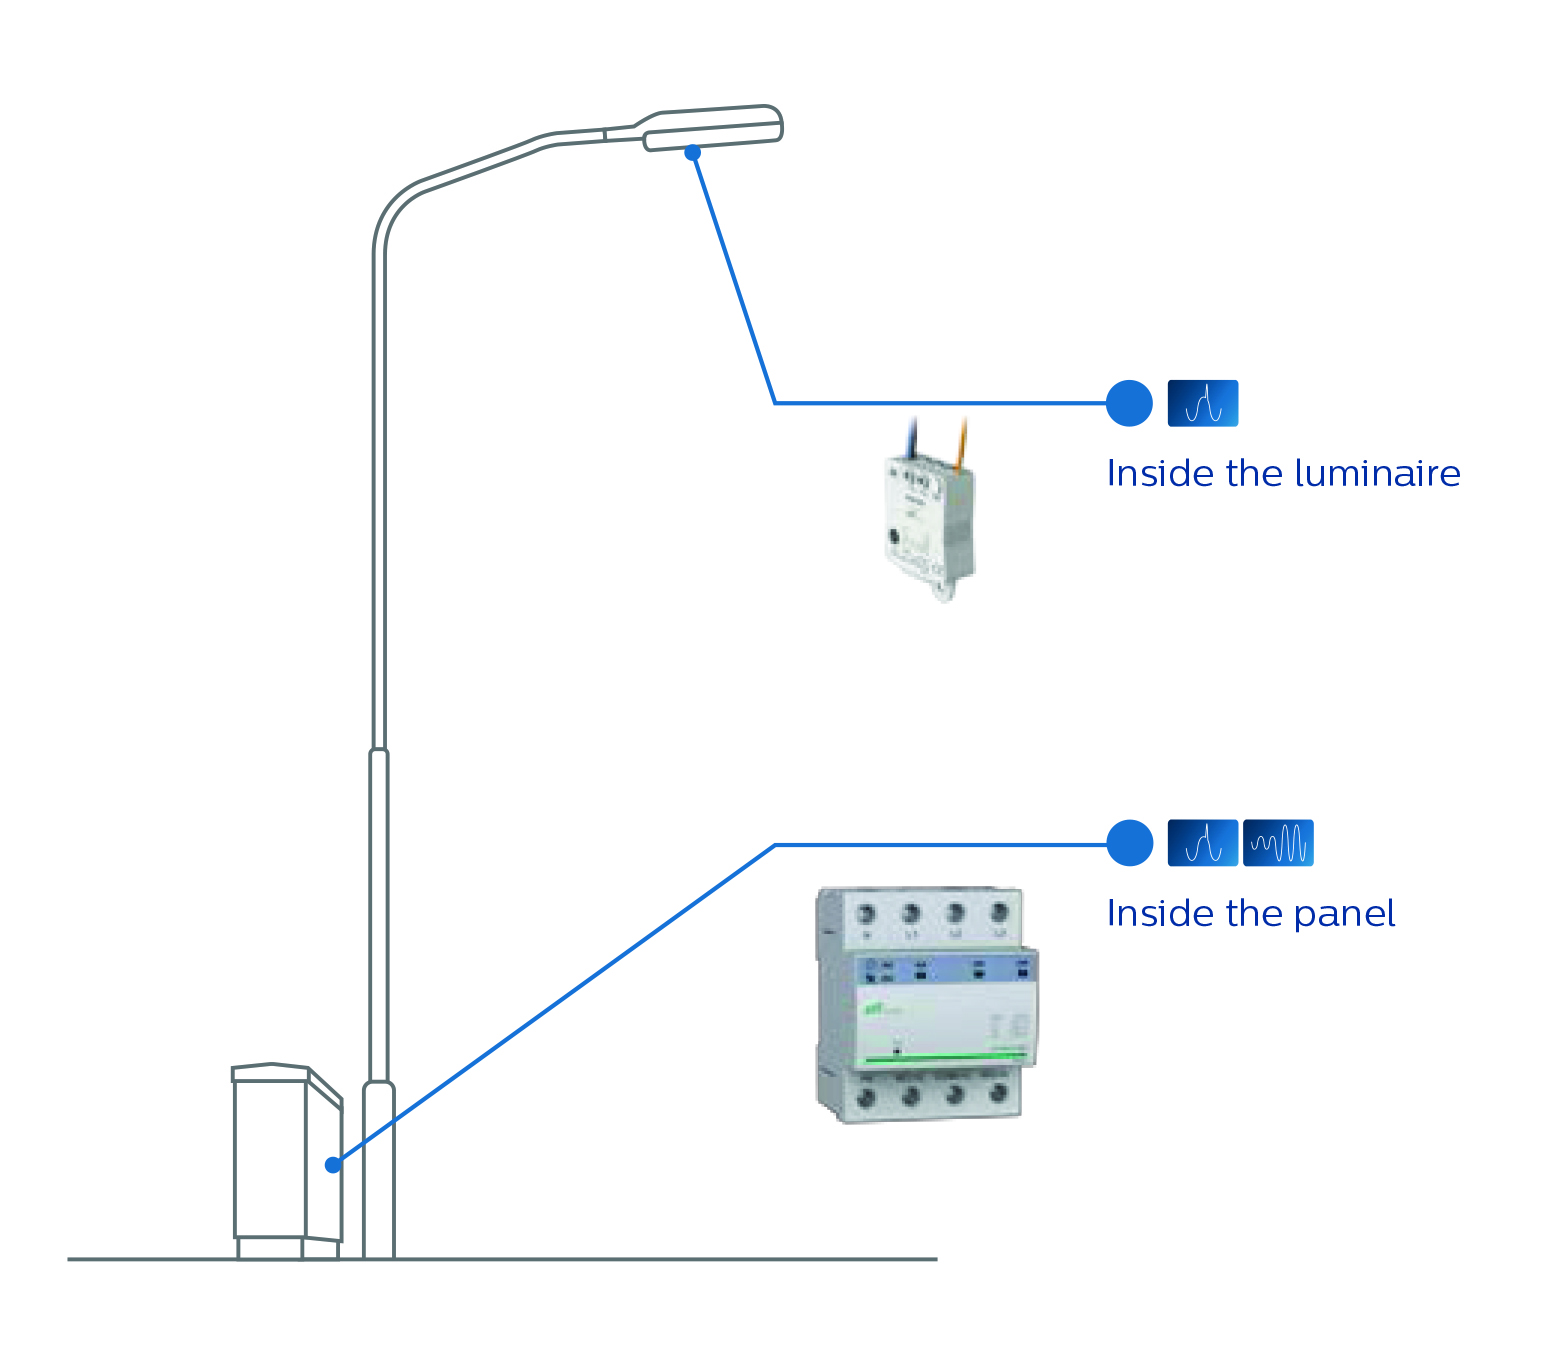 The challenges of surge protection in street lighting - EE